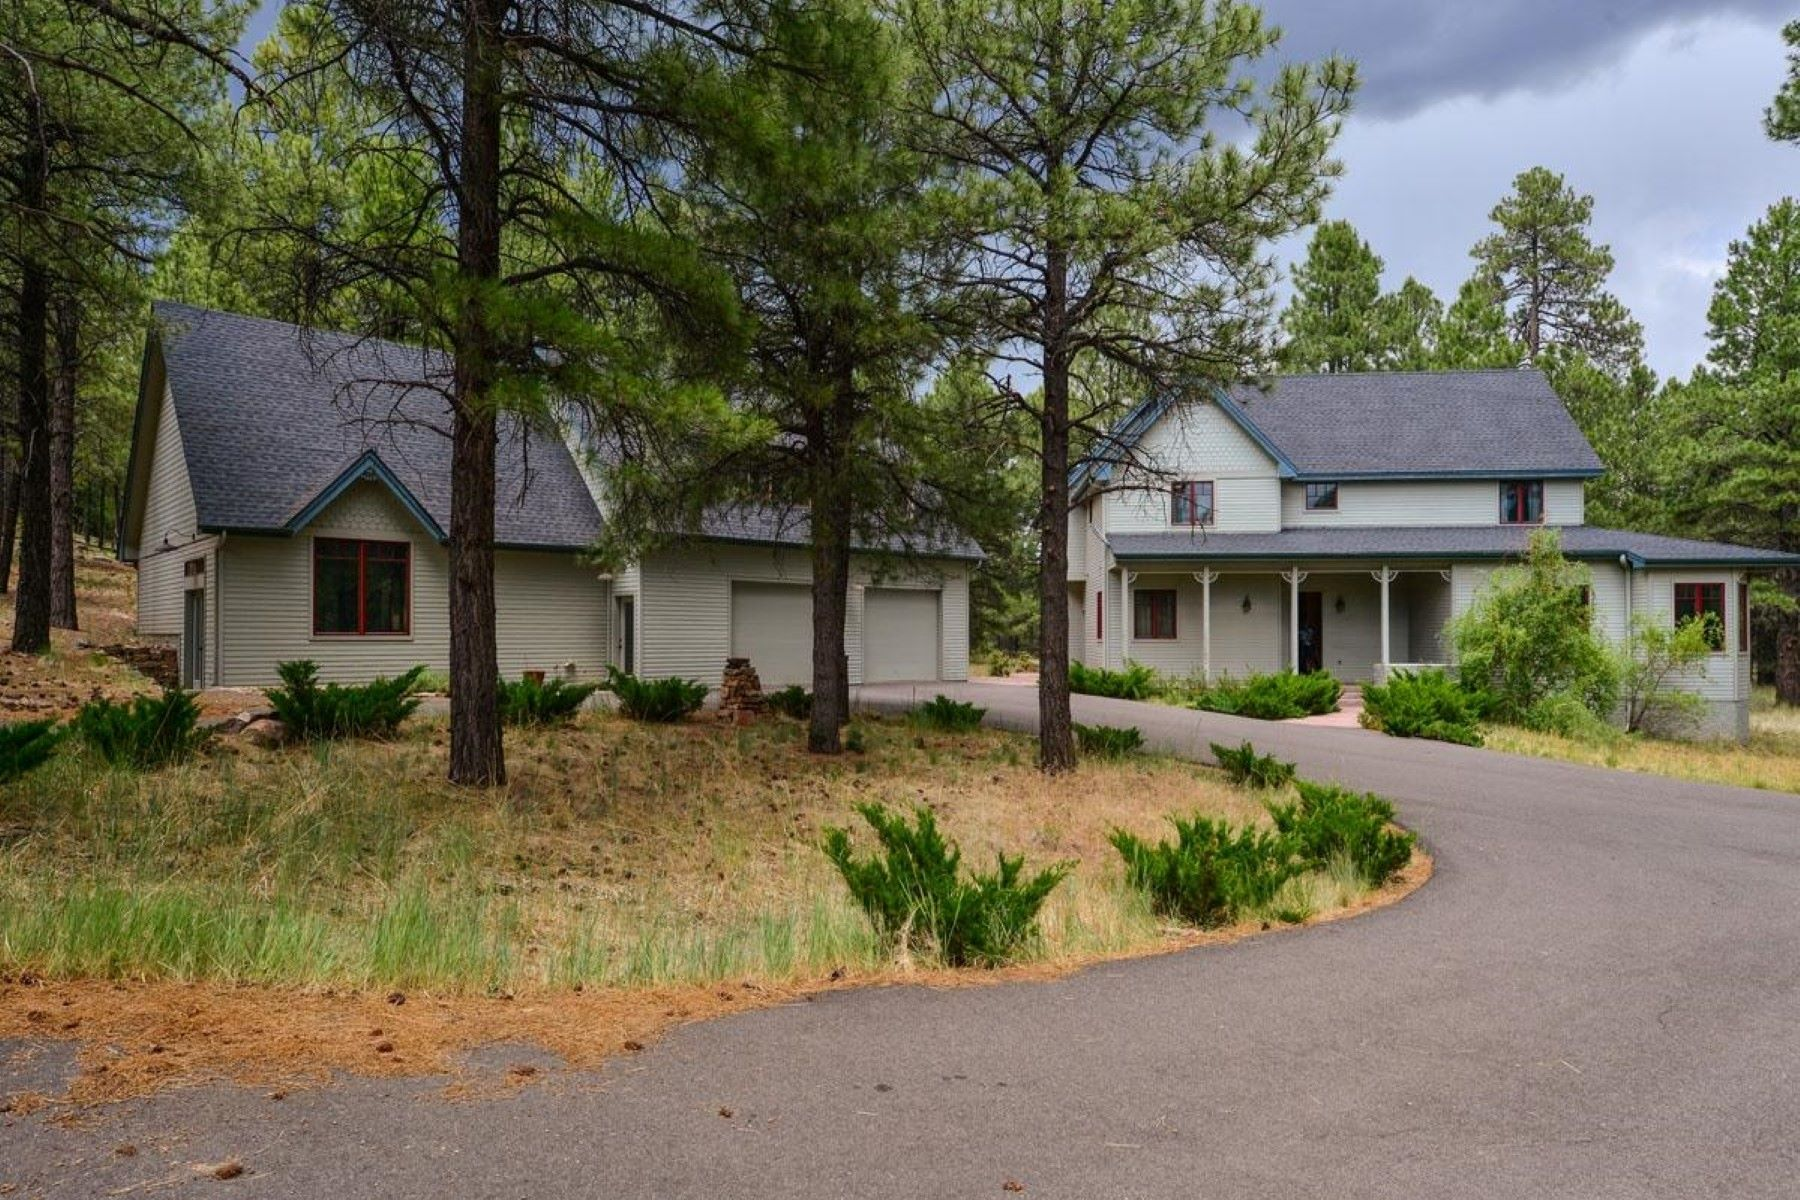 Casa Unifamiliar por un Venta en Custom Ranch with views of the San Francisco Peaks 2340 Constitution Blvd, Flagstaff, Arizona, 86005 Estados Unidos